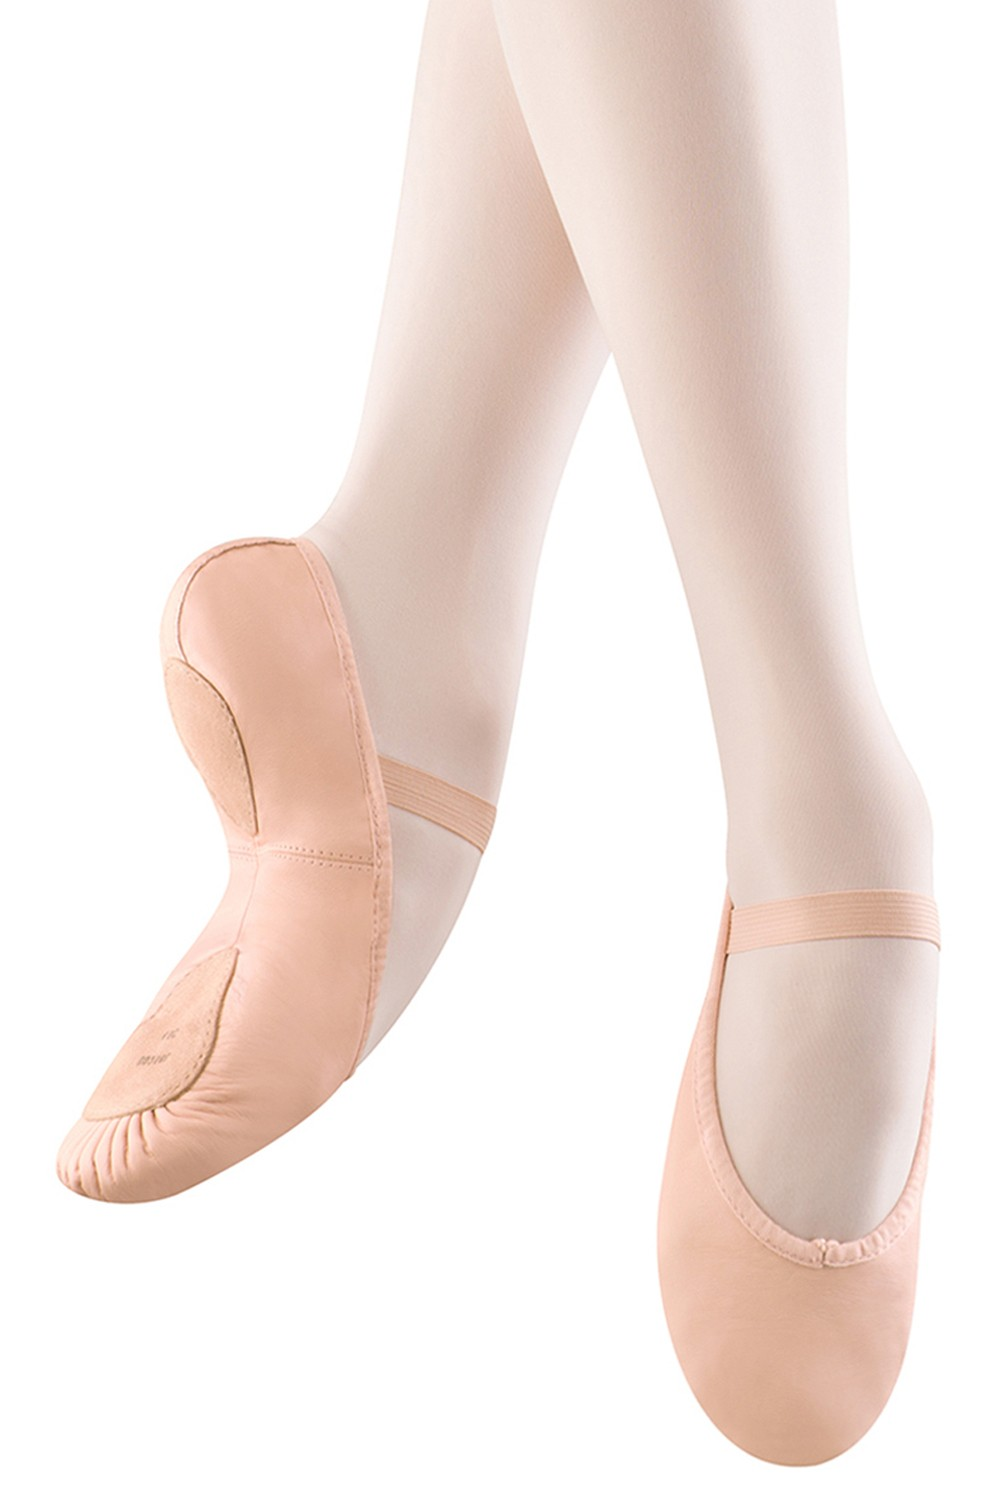 Arise Suela Partida - Niñas Girl's Ballet Shoes